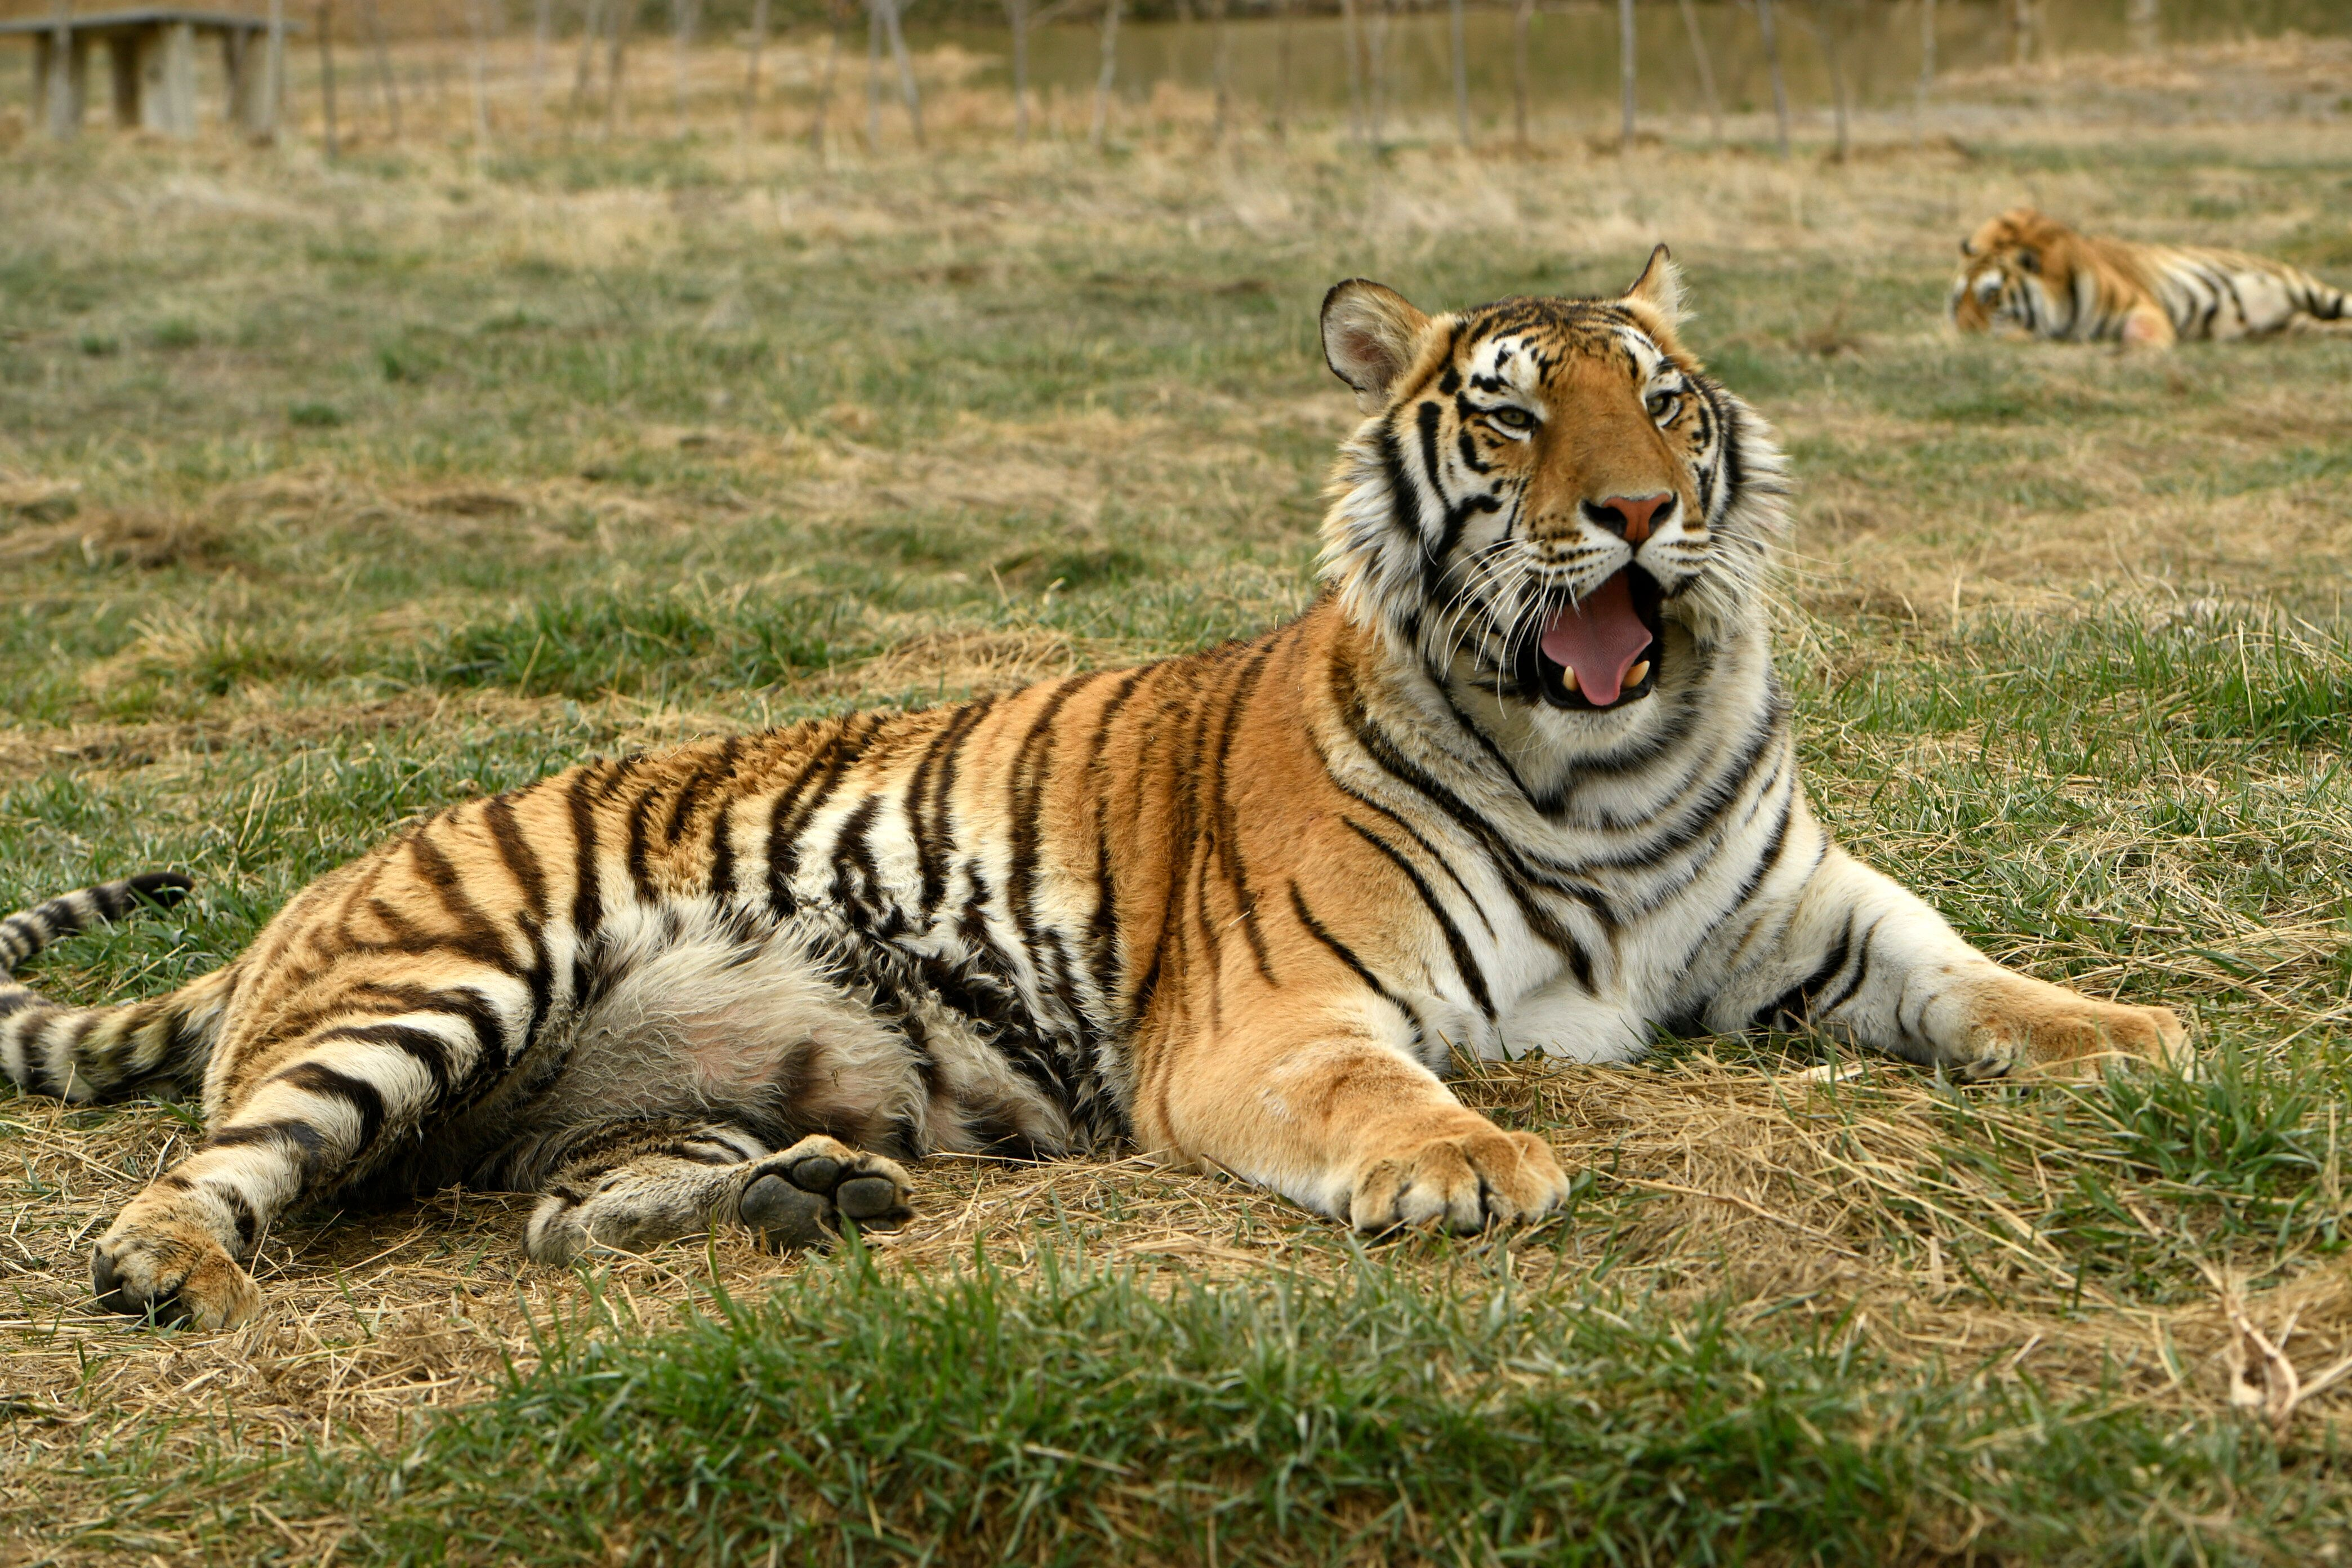 Thirty-nine tigers and three black bears formerly in the possession of Oklahoma zookeeper Joe Exotic now live at The Wild Ani